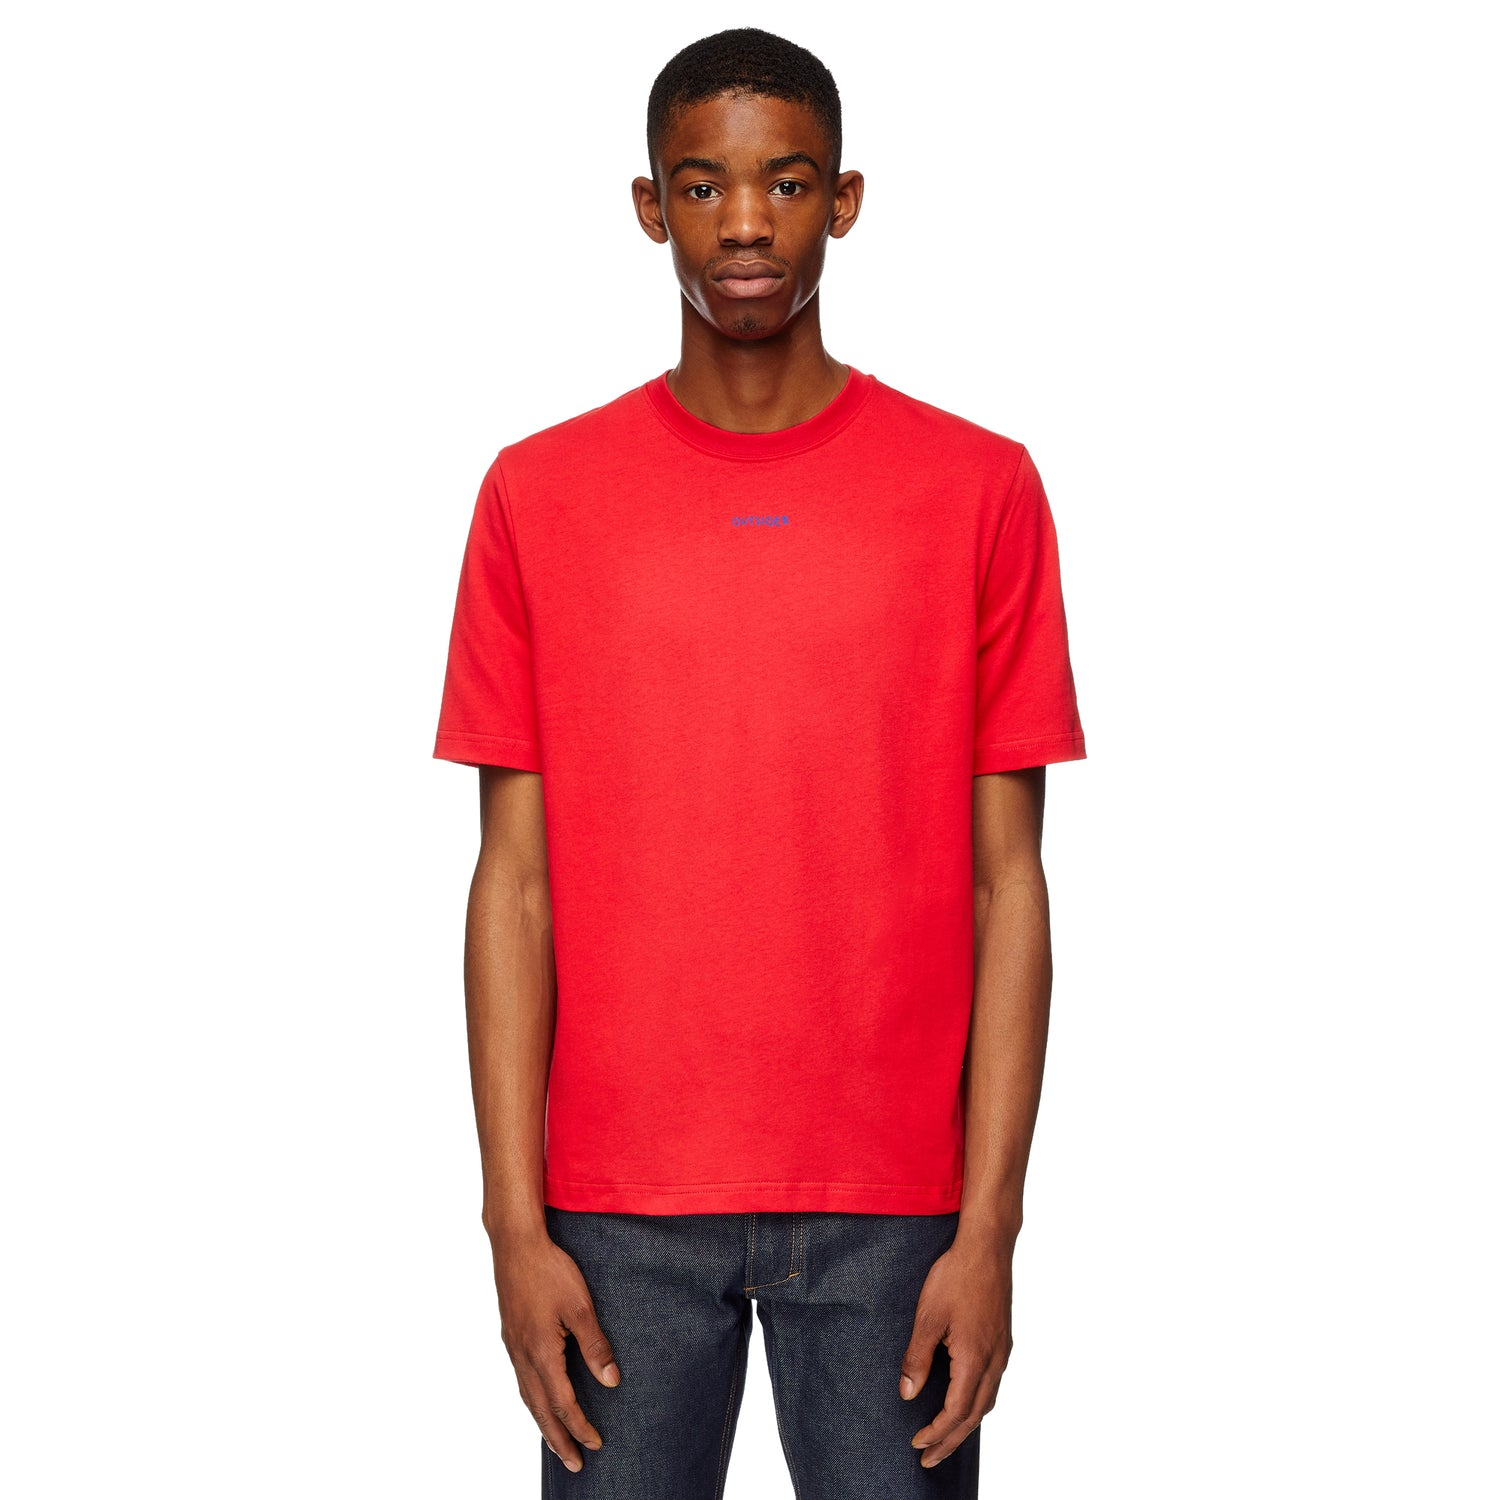 Outsider Red & Navy T-shirt